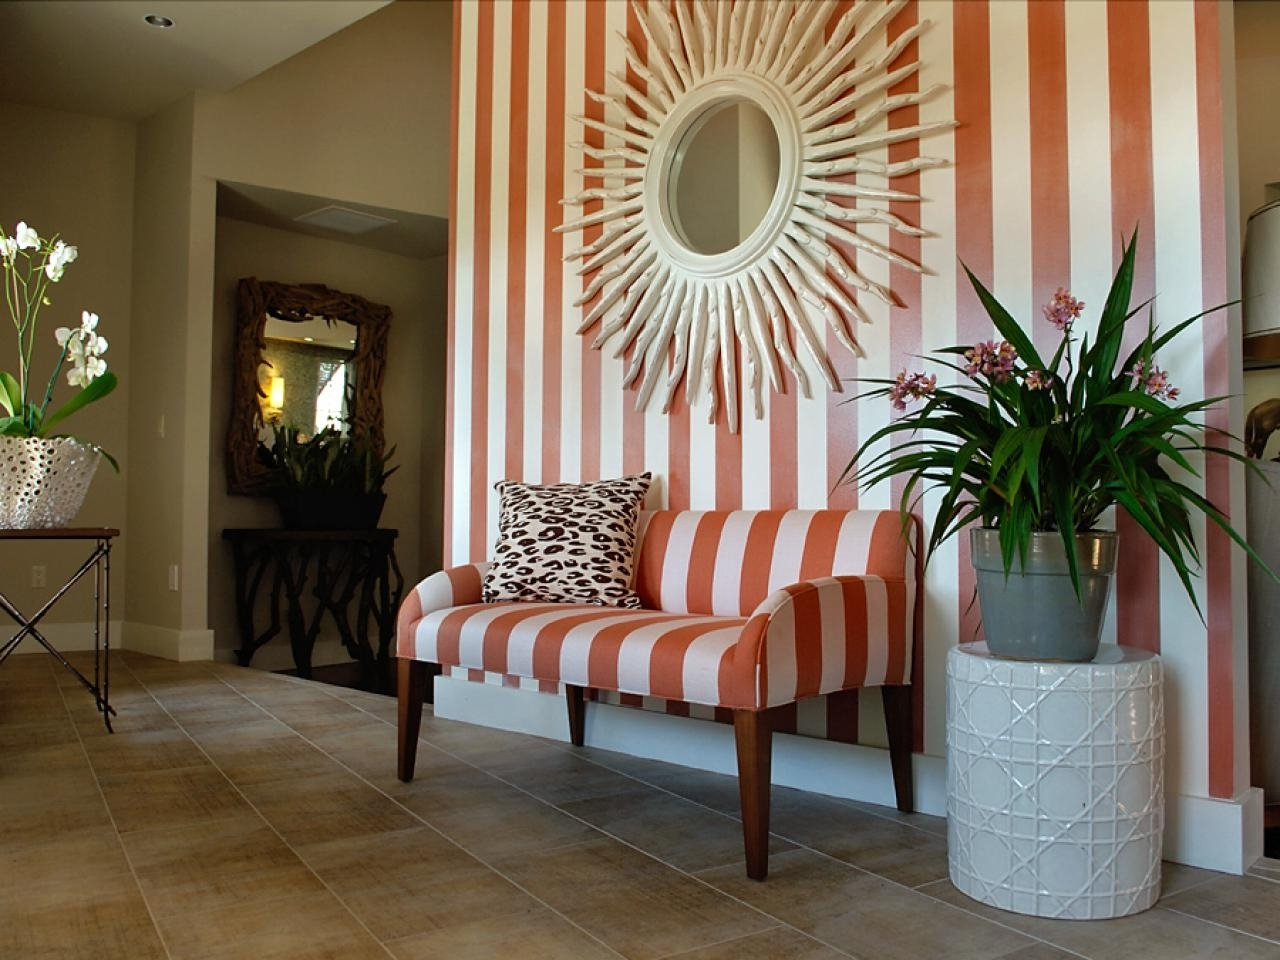 Striped Foyer Theme With Sunburst Wall Mirror Decor (View 12 of 15)